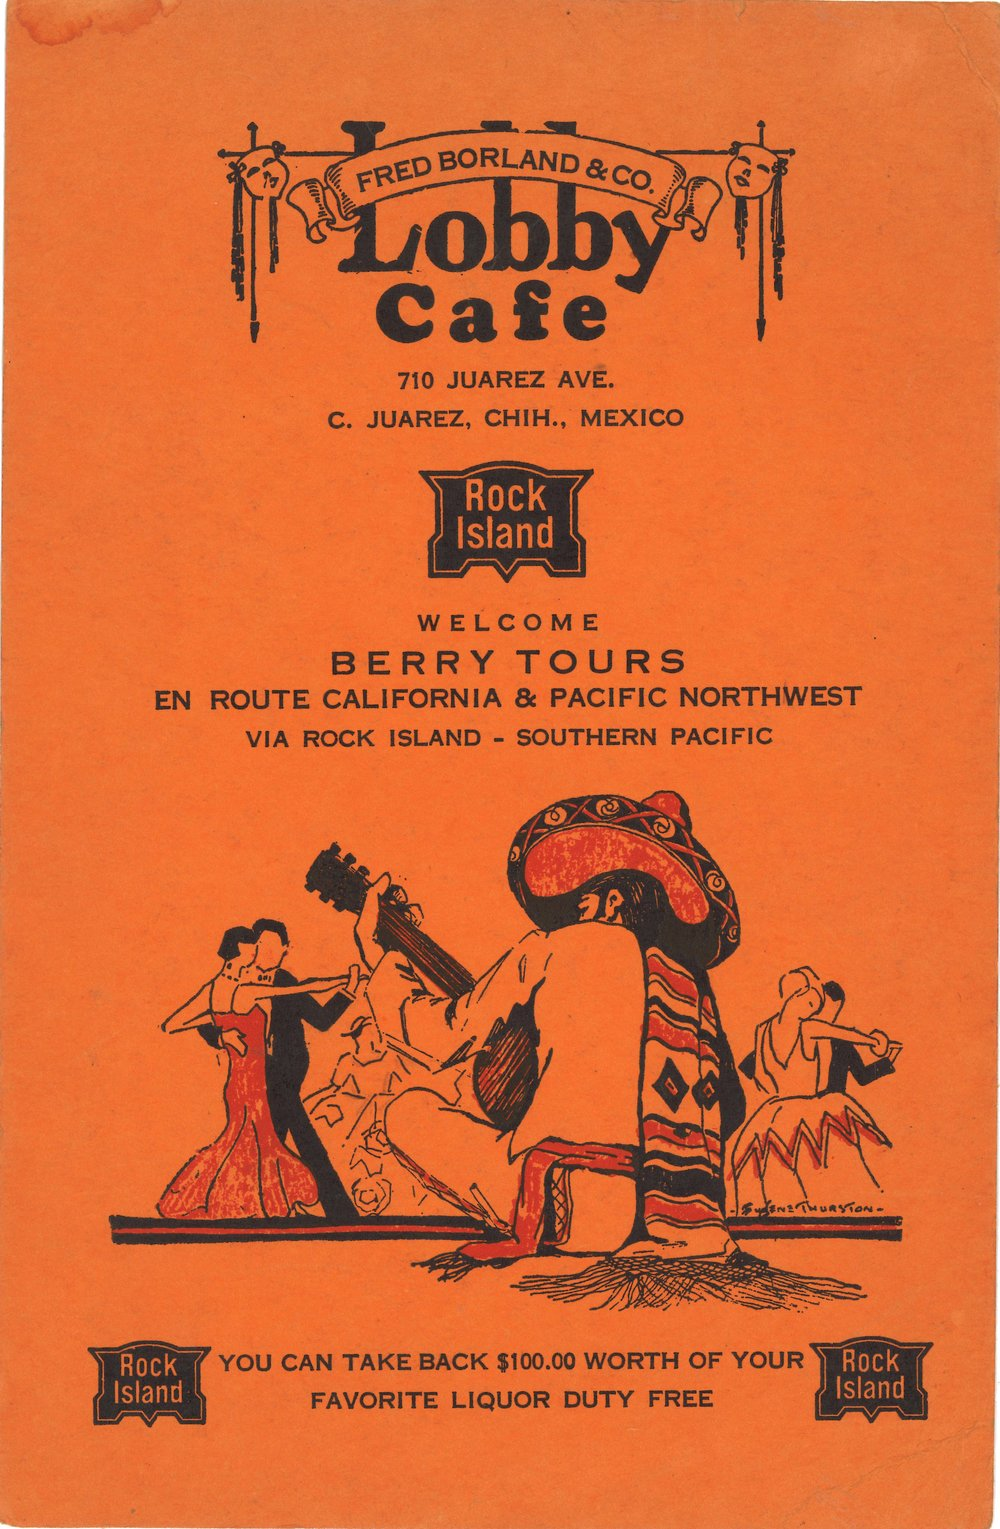 Fred Borland and Co Lobby Cafe Menu_small.jpg